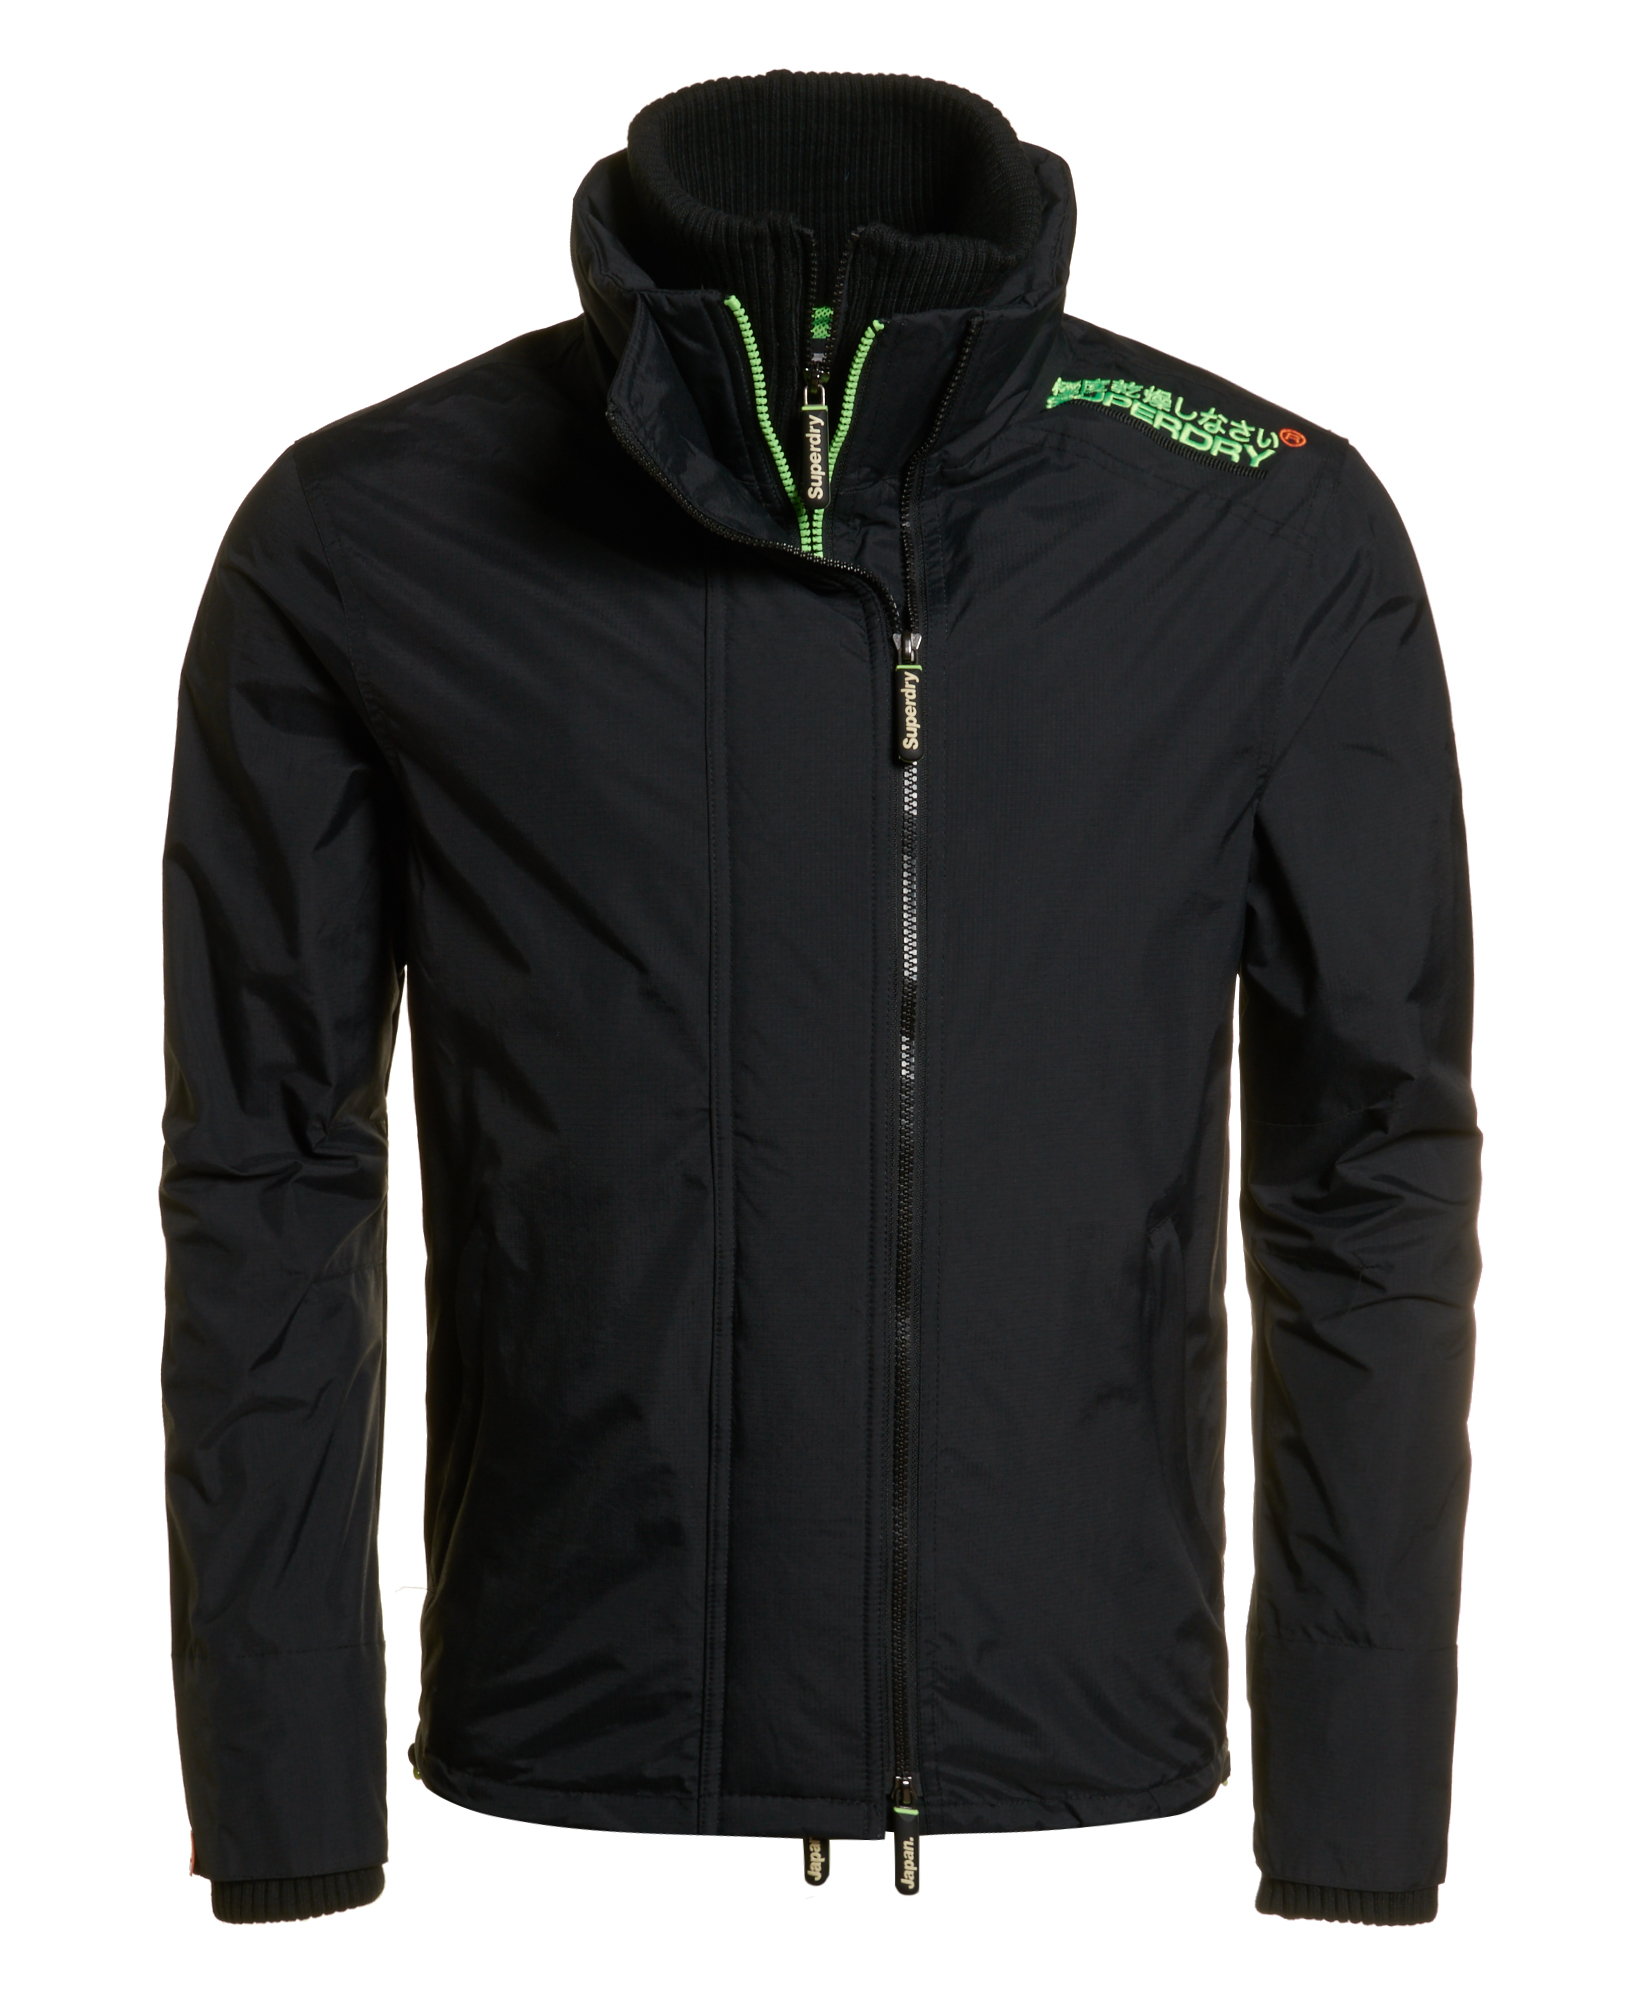 neue herren superdry pop zip windcheater jacke black ebay. Black Bedroom Furniture Sets. Home Design Ideas